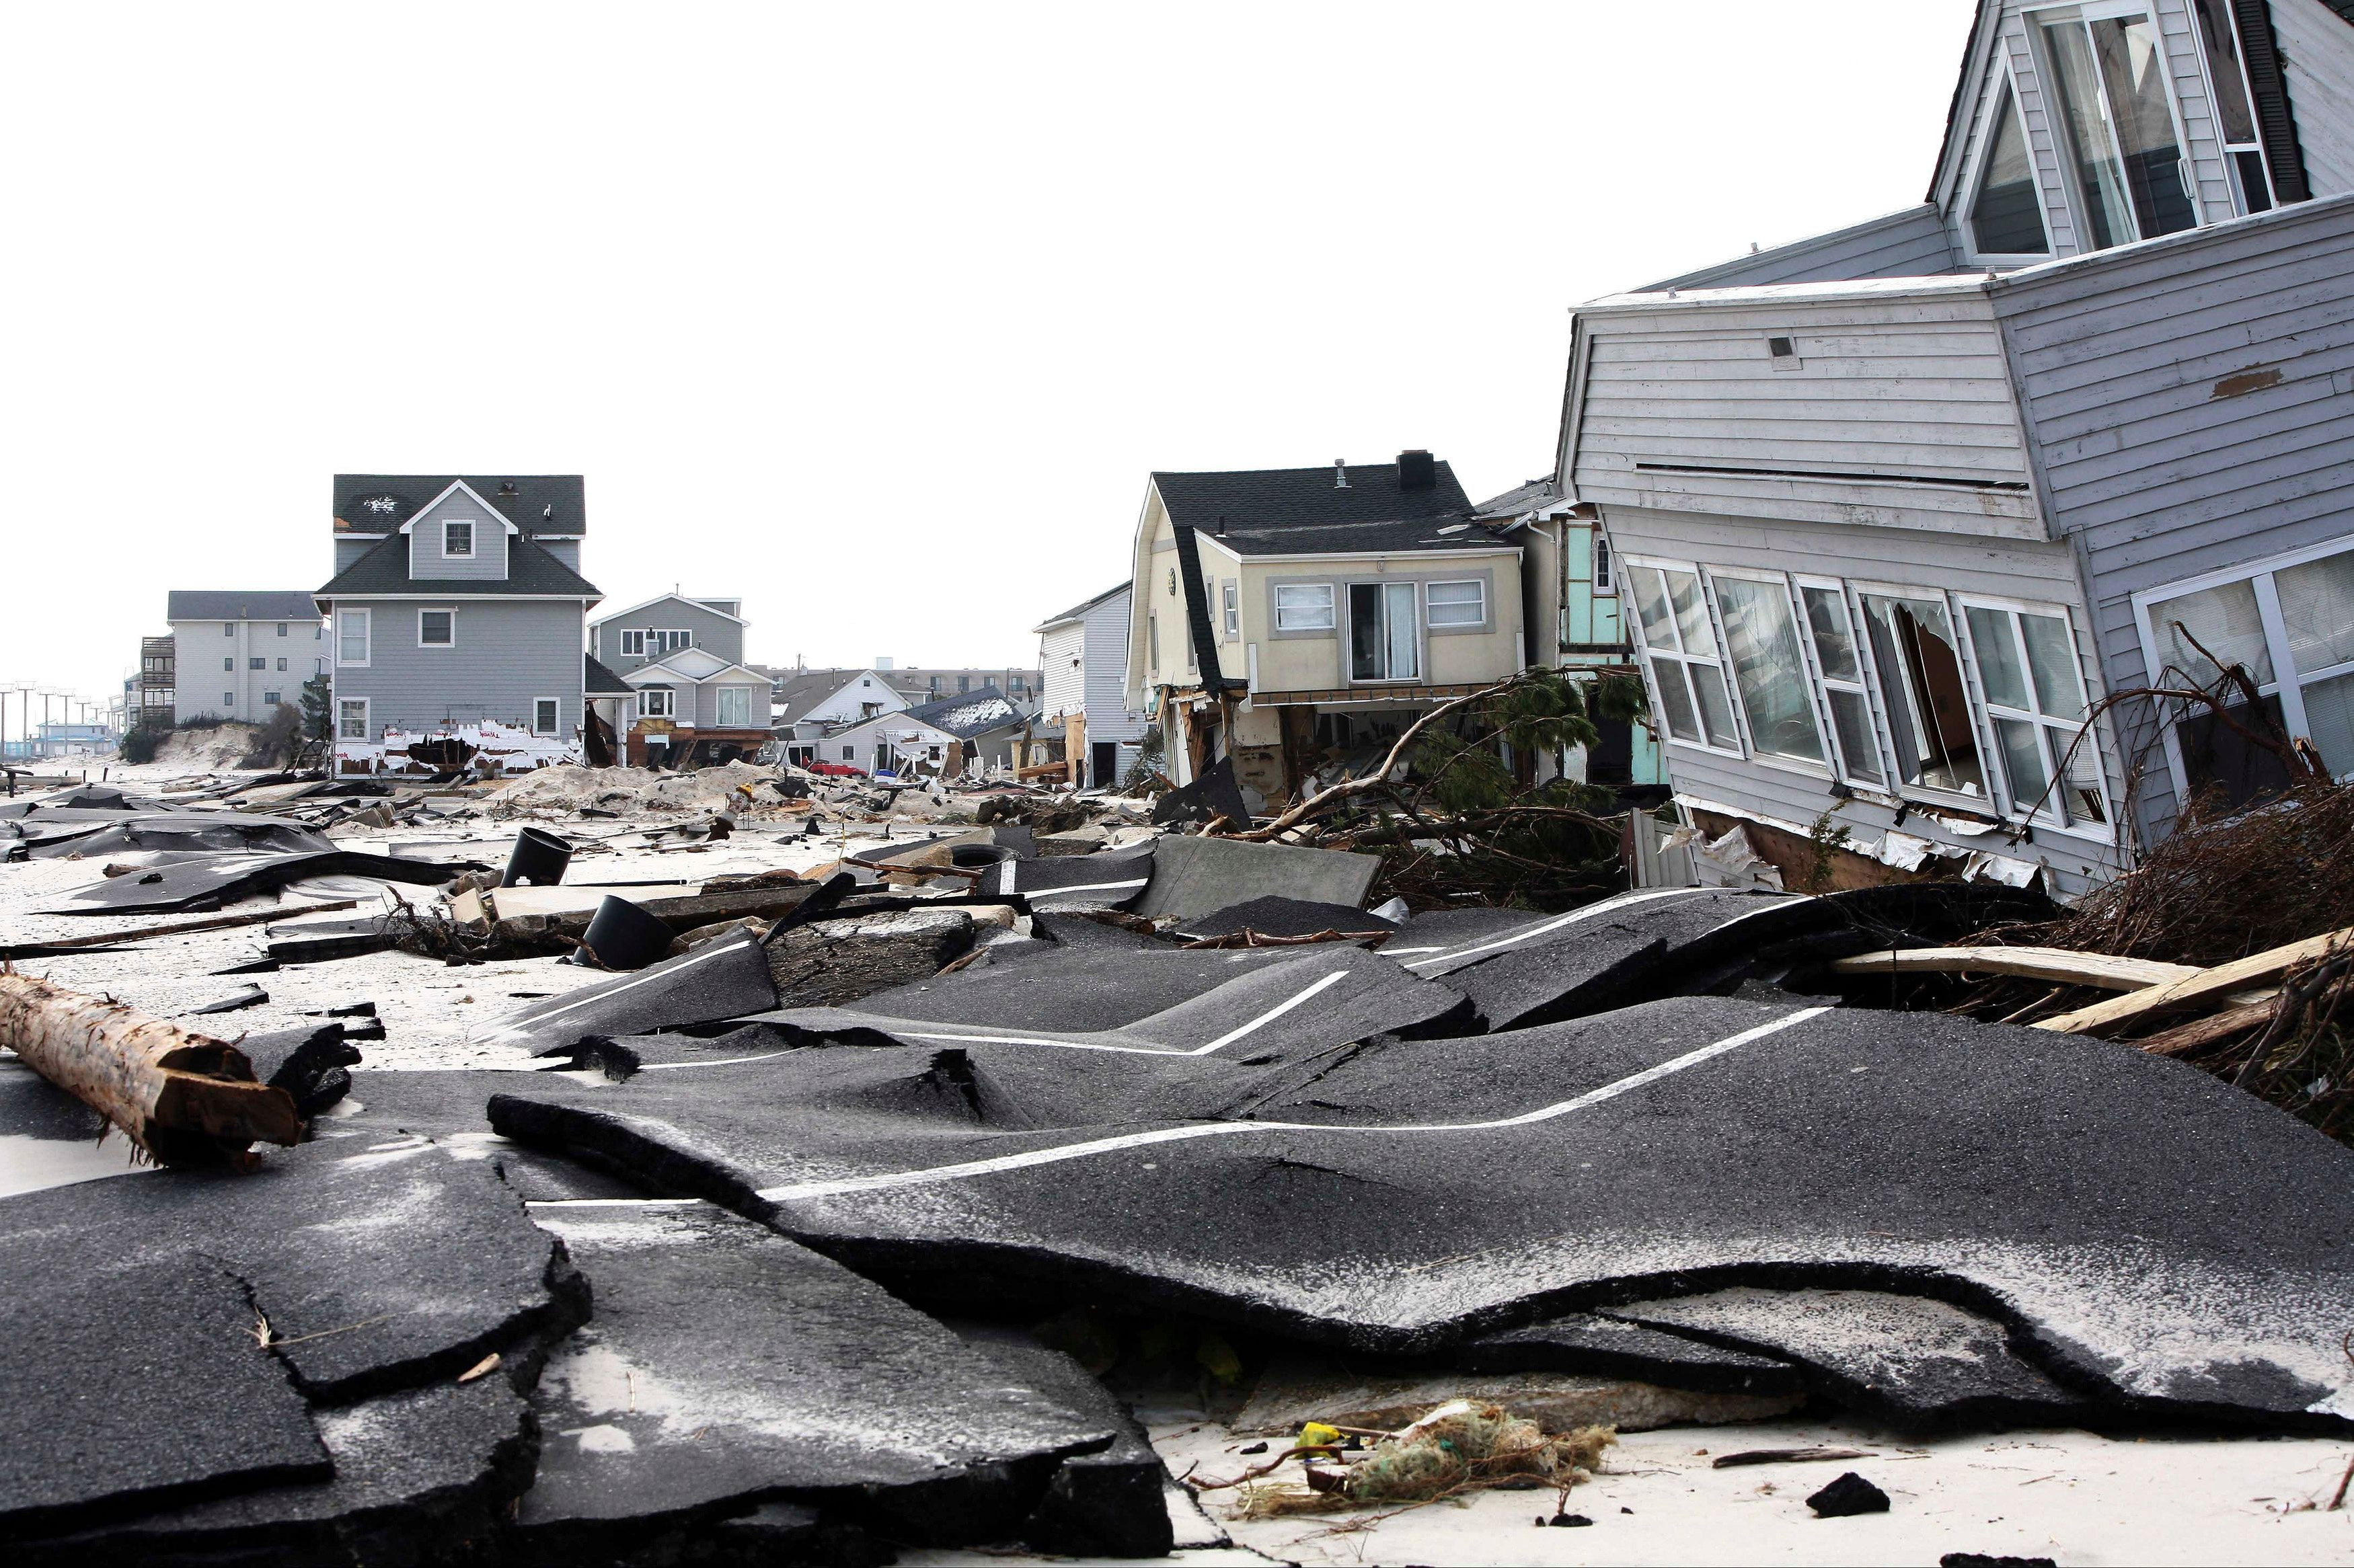 Streets damaged during Hurricane Sandy are seen in Ortley Beach, New Jersey, in this November 10, 2012. One year later, Presi